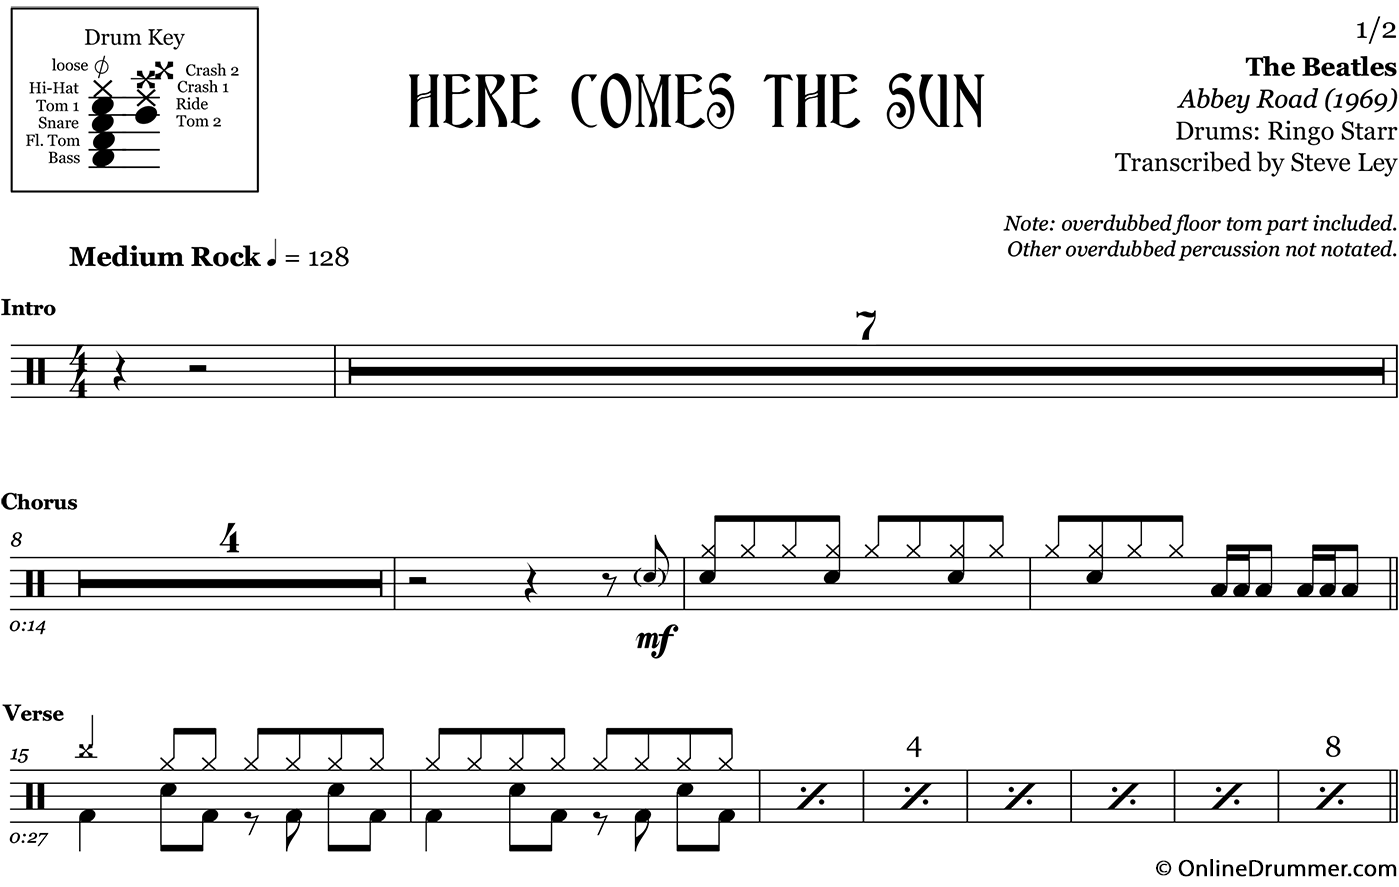 Here Comes The Sun The Beatles Drum Sheet Music